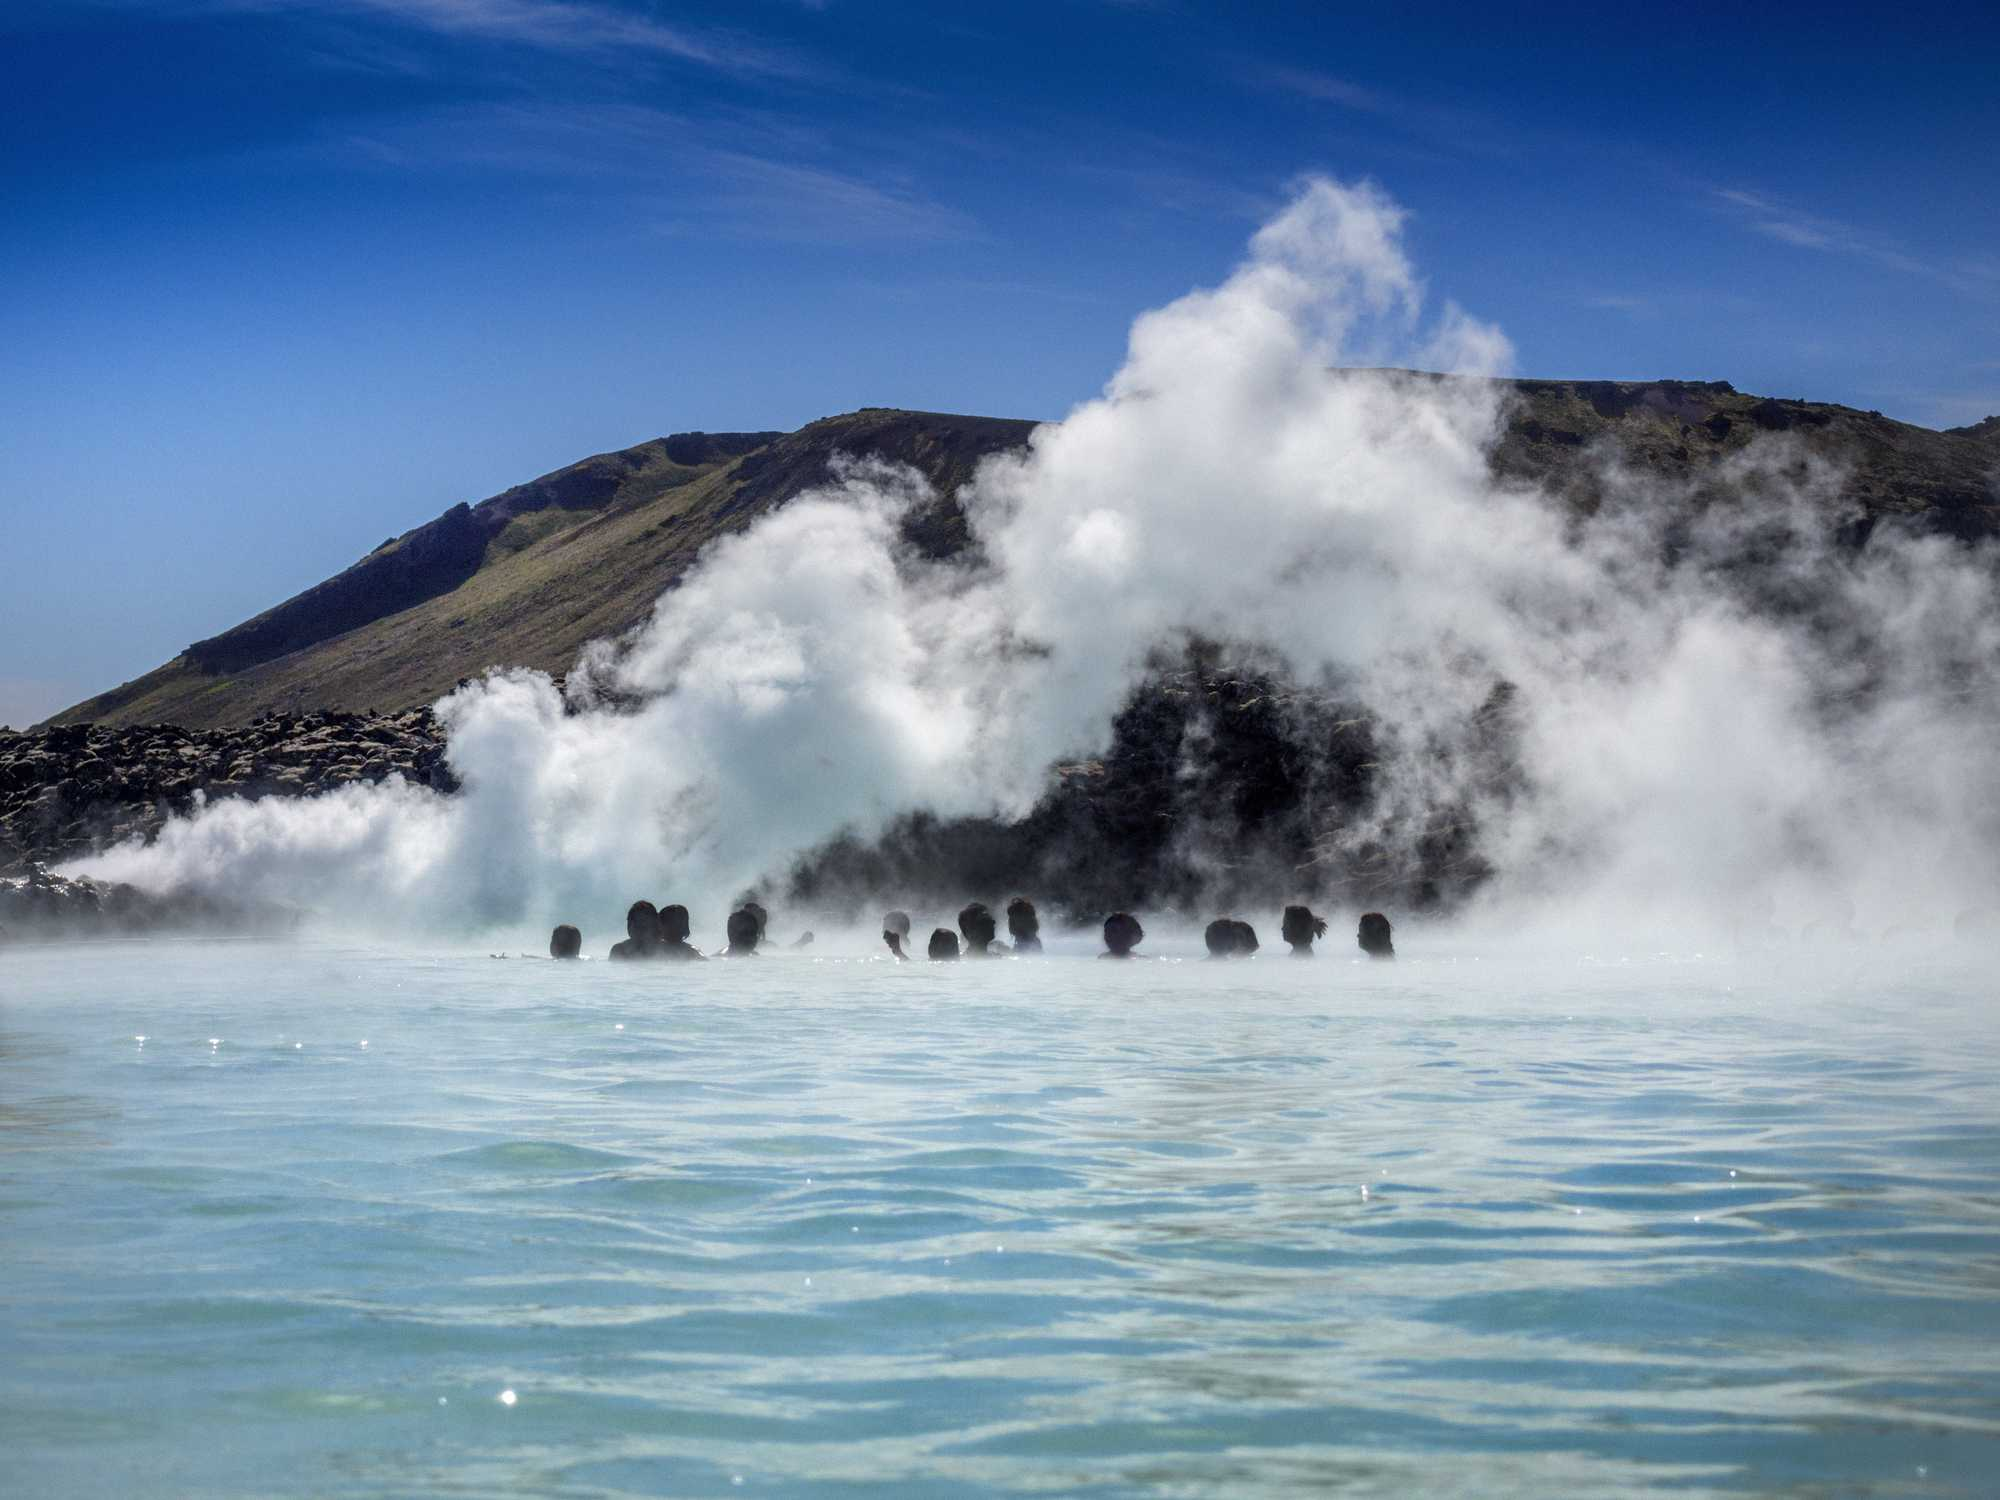 People enjoying the water at the Blue Lagoon, Southern Peninsula, Iceland